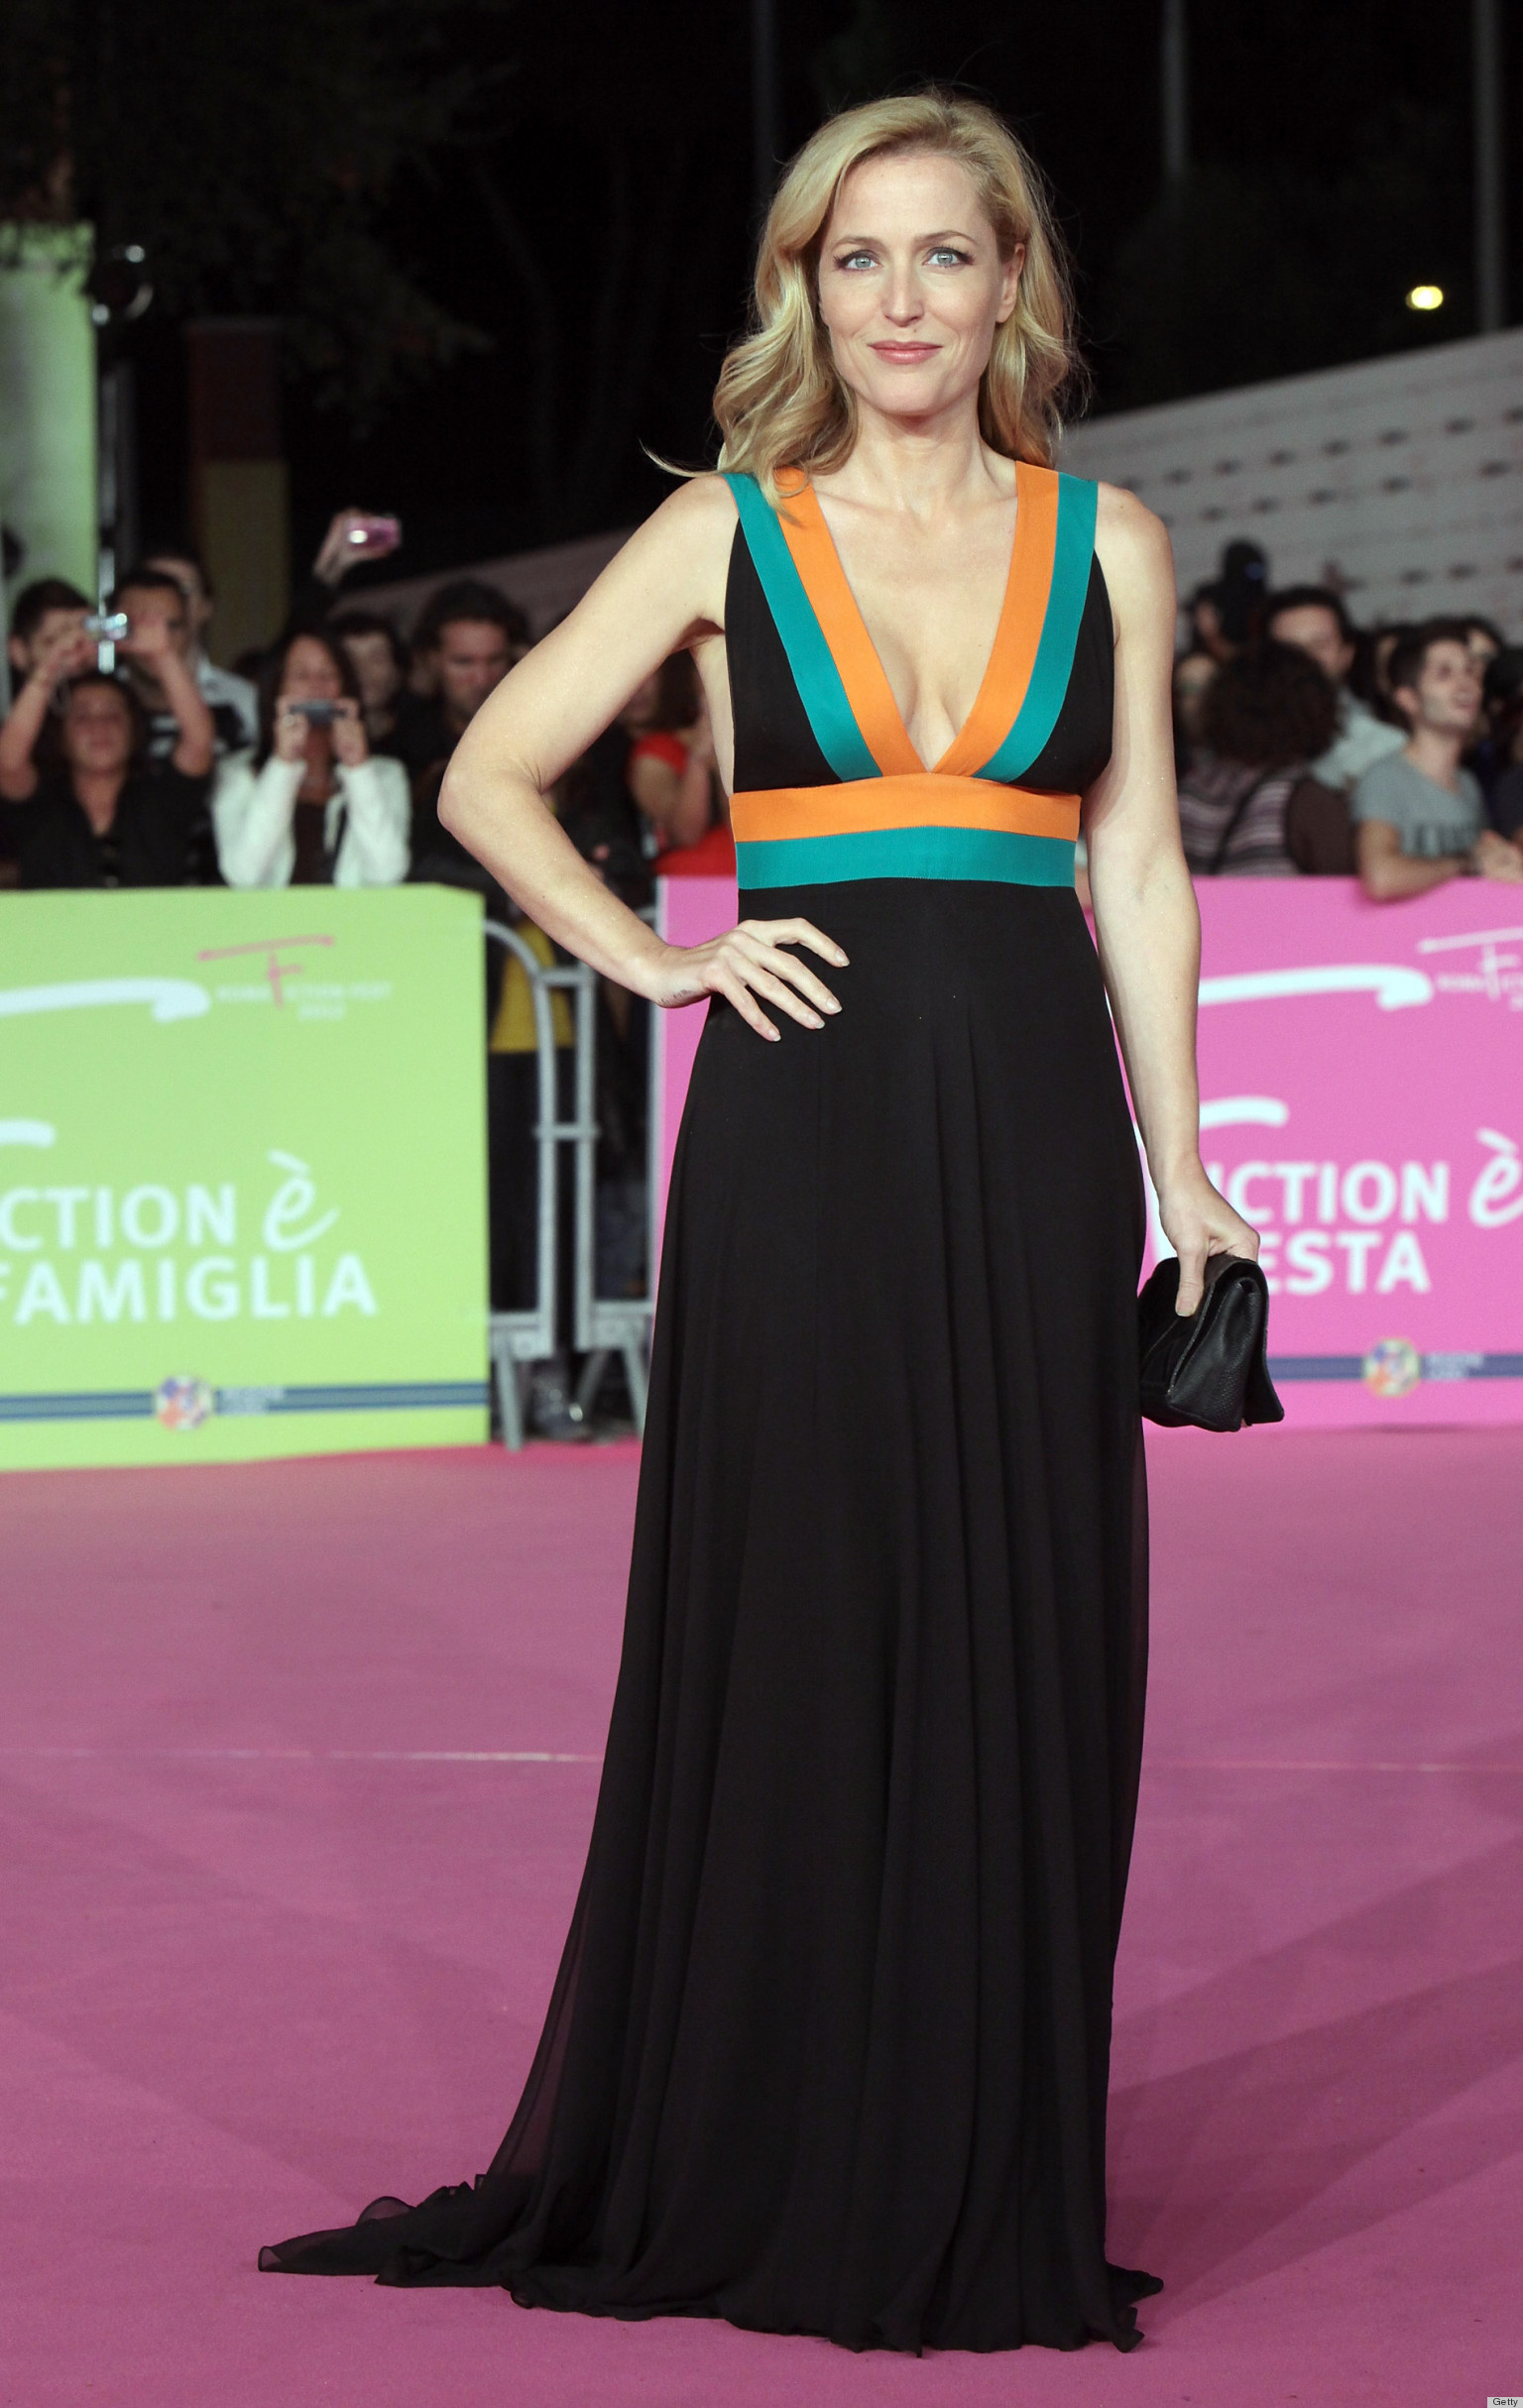 gillian anderson sizzles in plunging neckline in rome photos